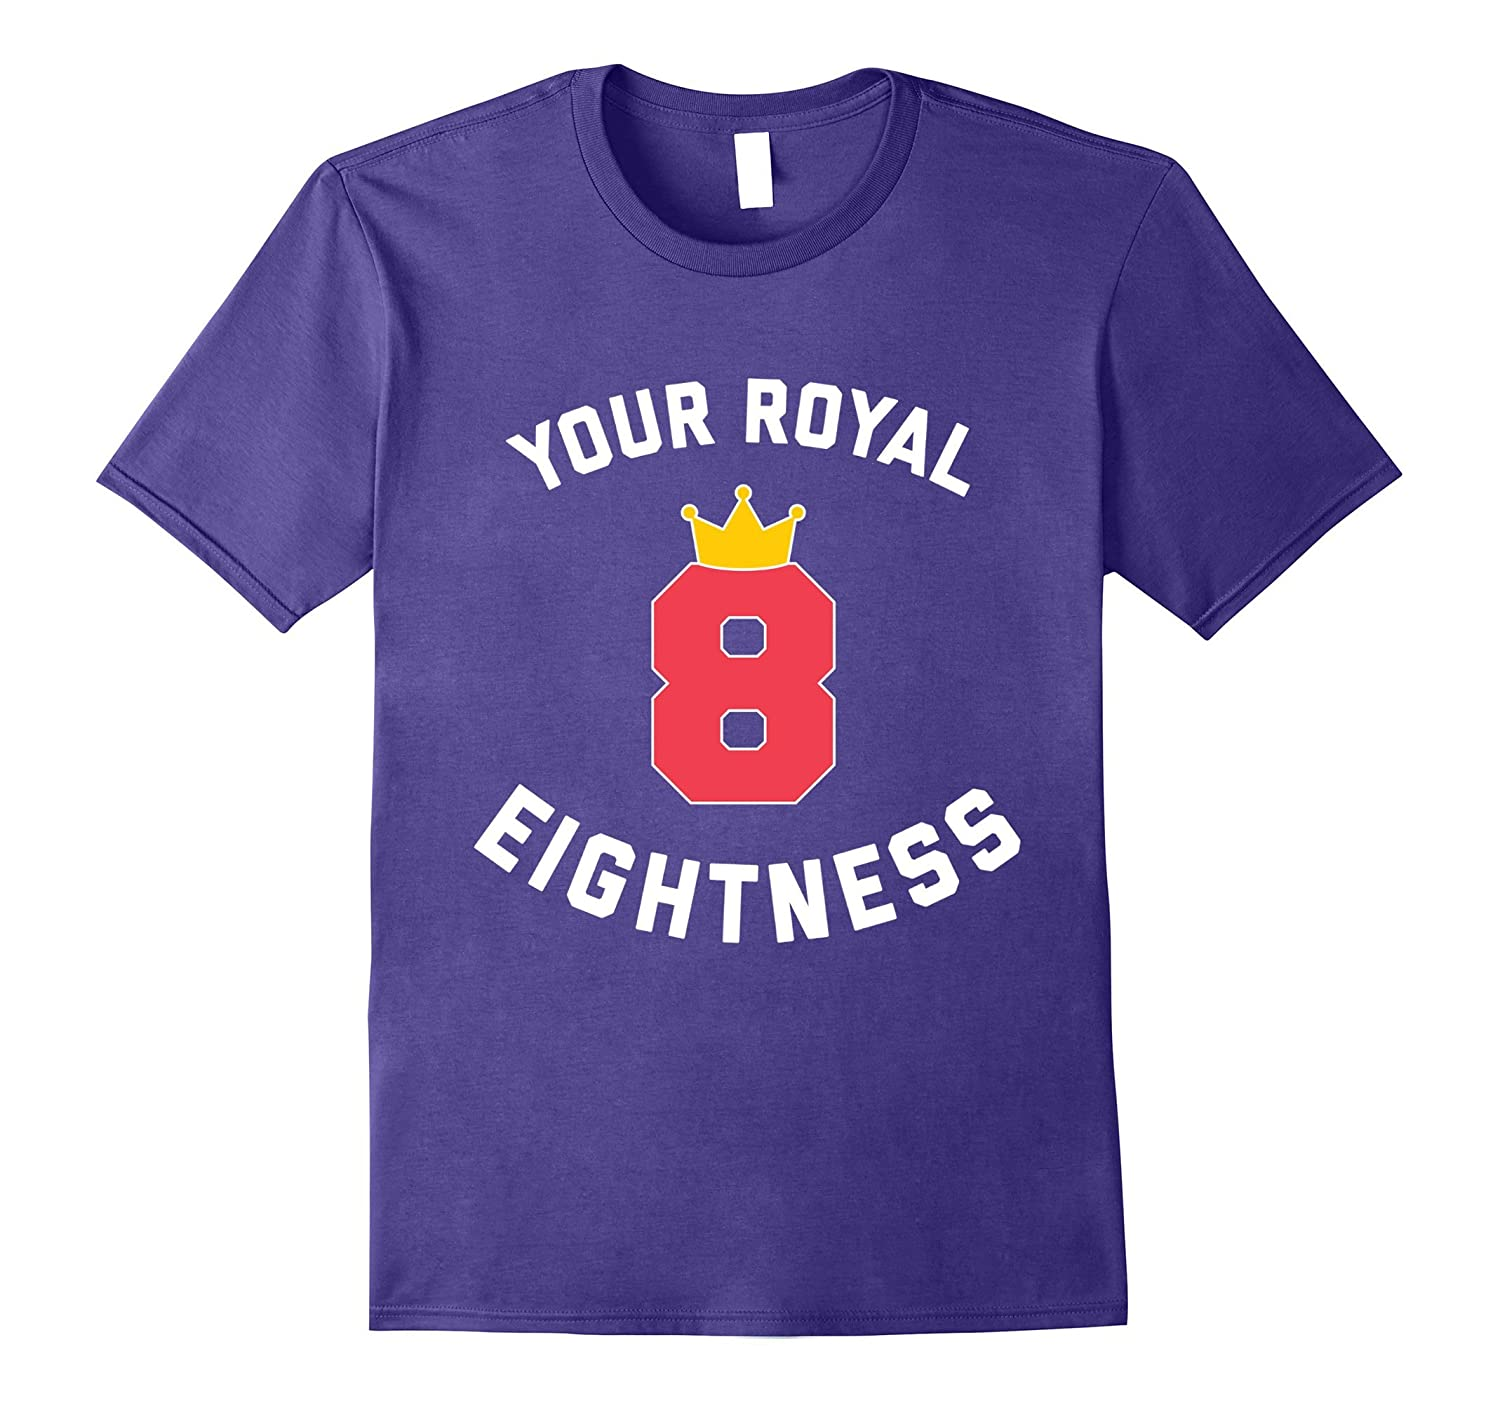 8th Birthday Gift Shirt - Your Royal Eightness-BN